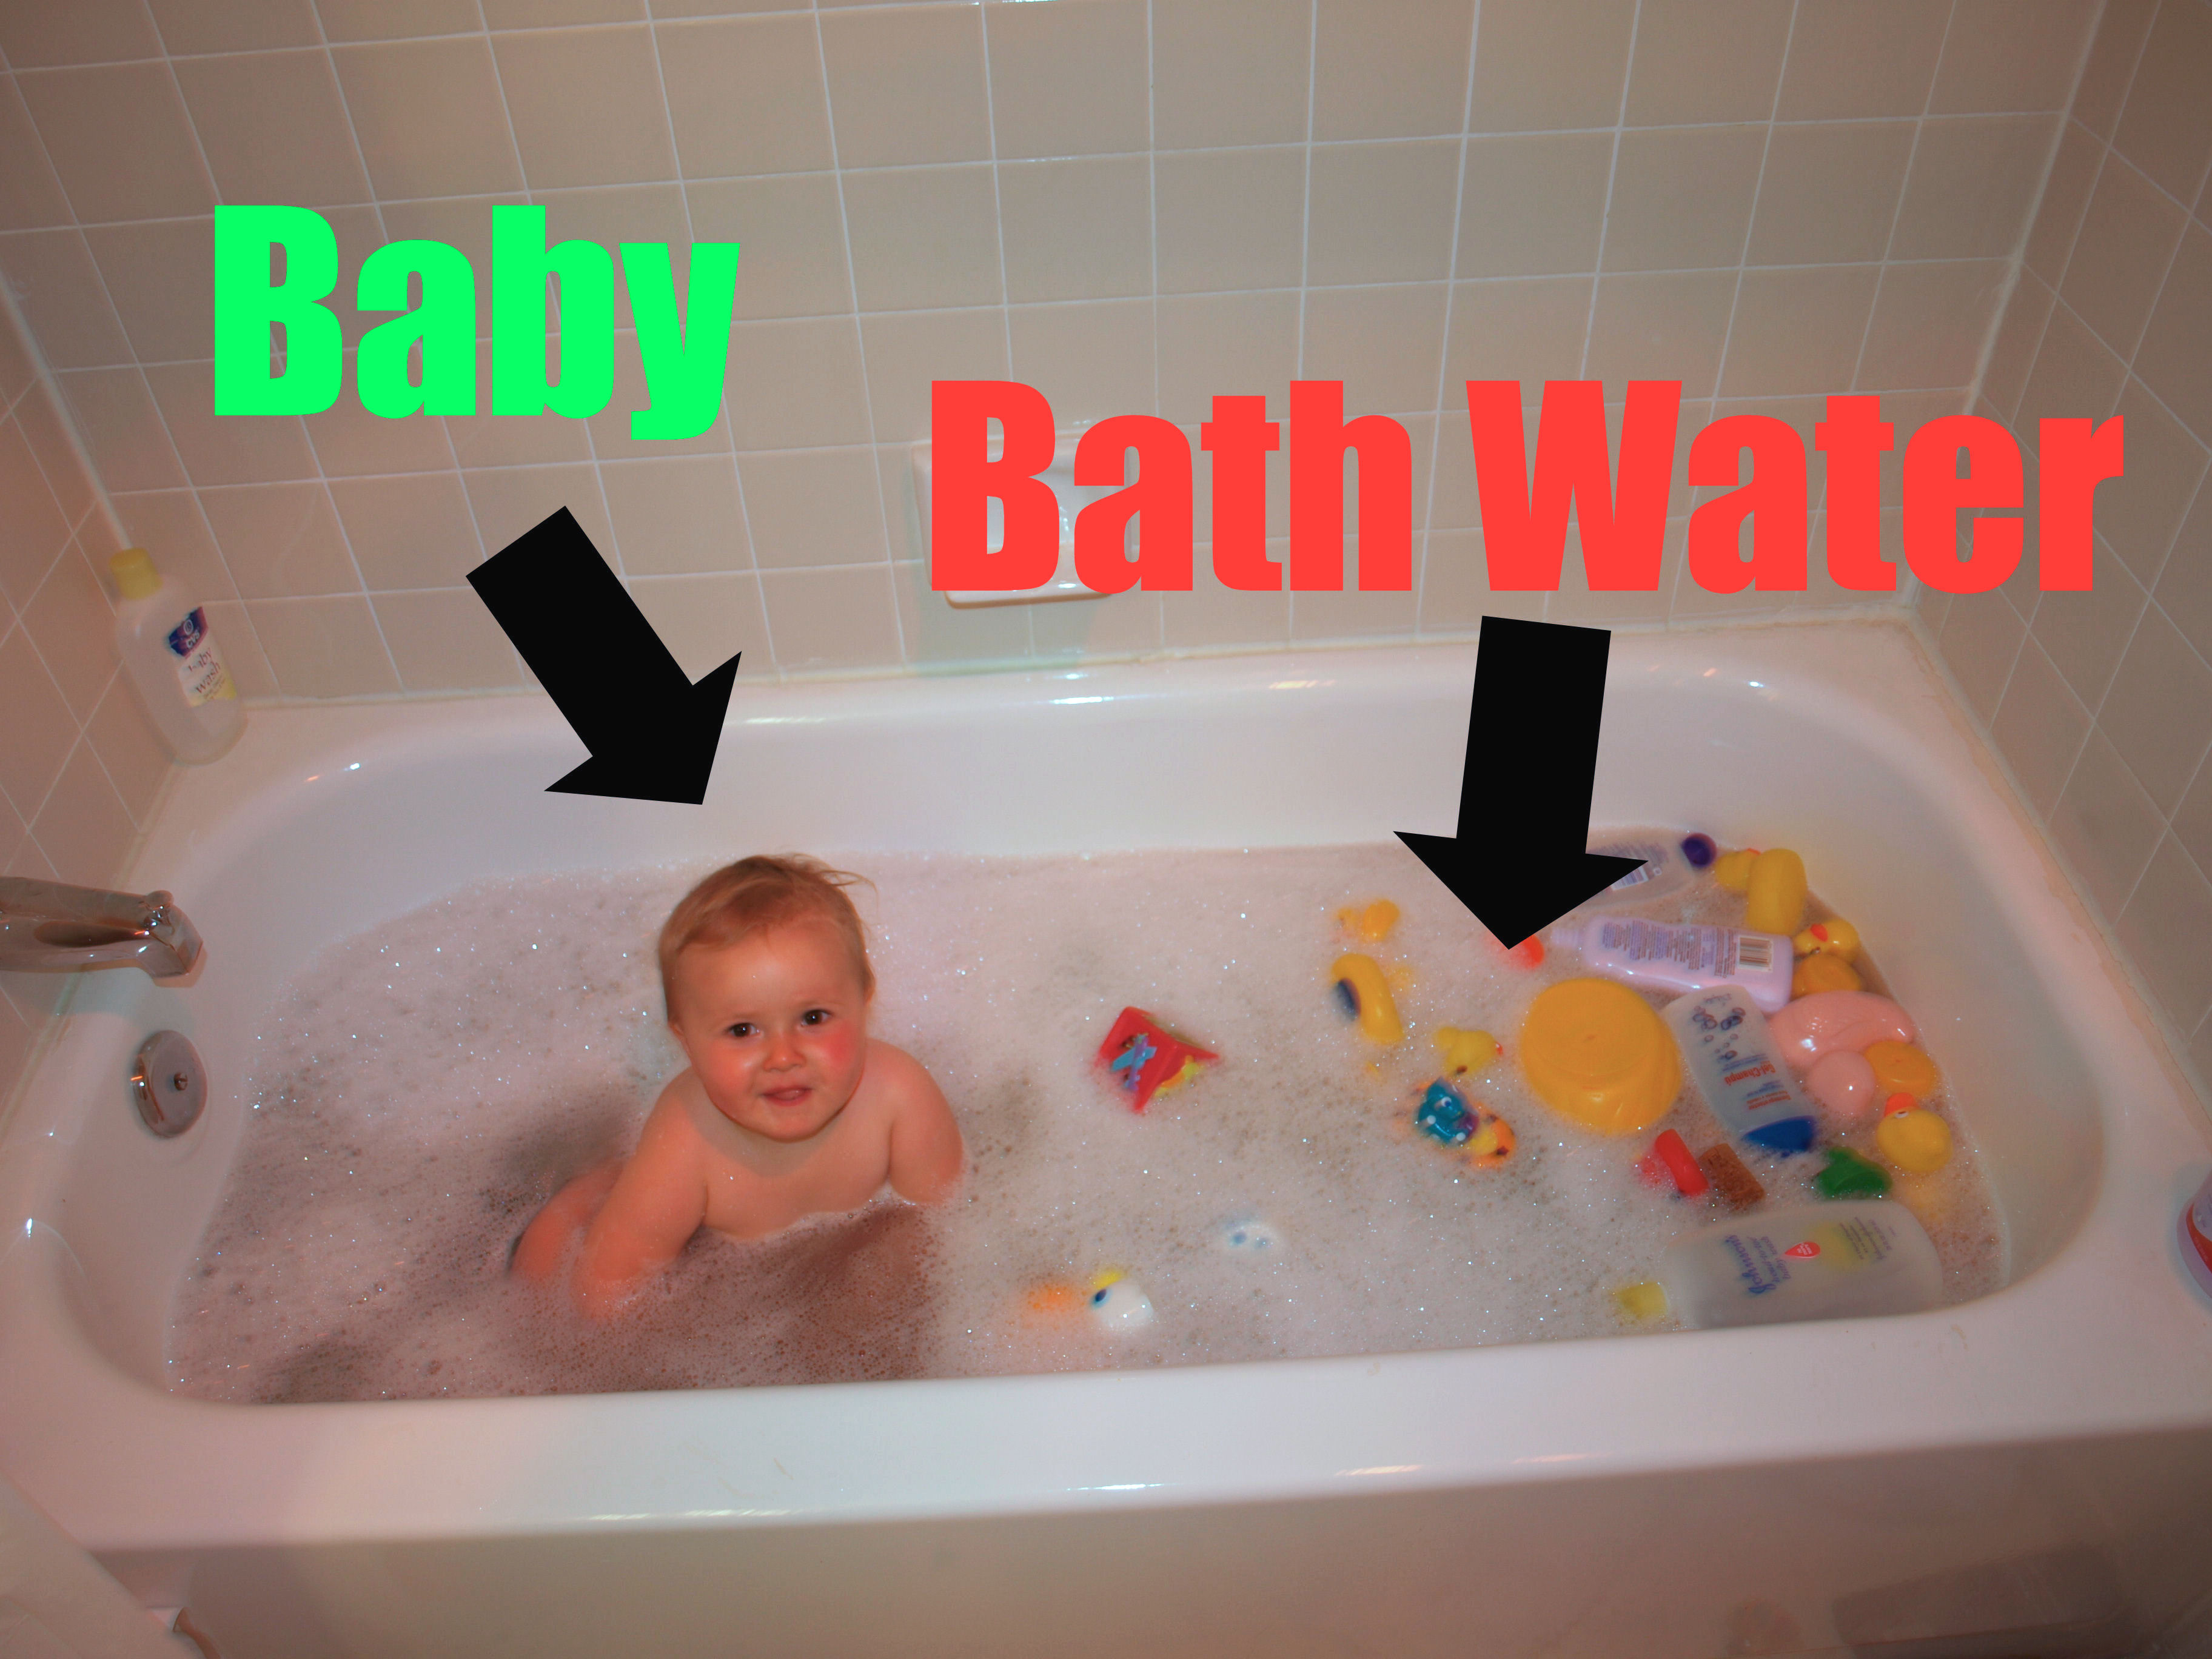 Don't throw the baby out with the bath water.